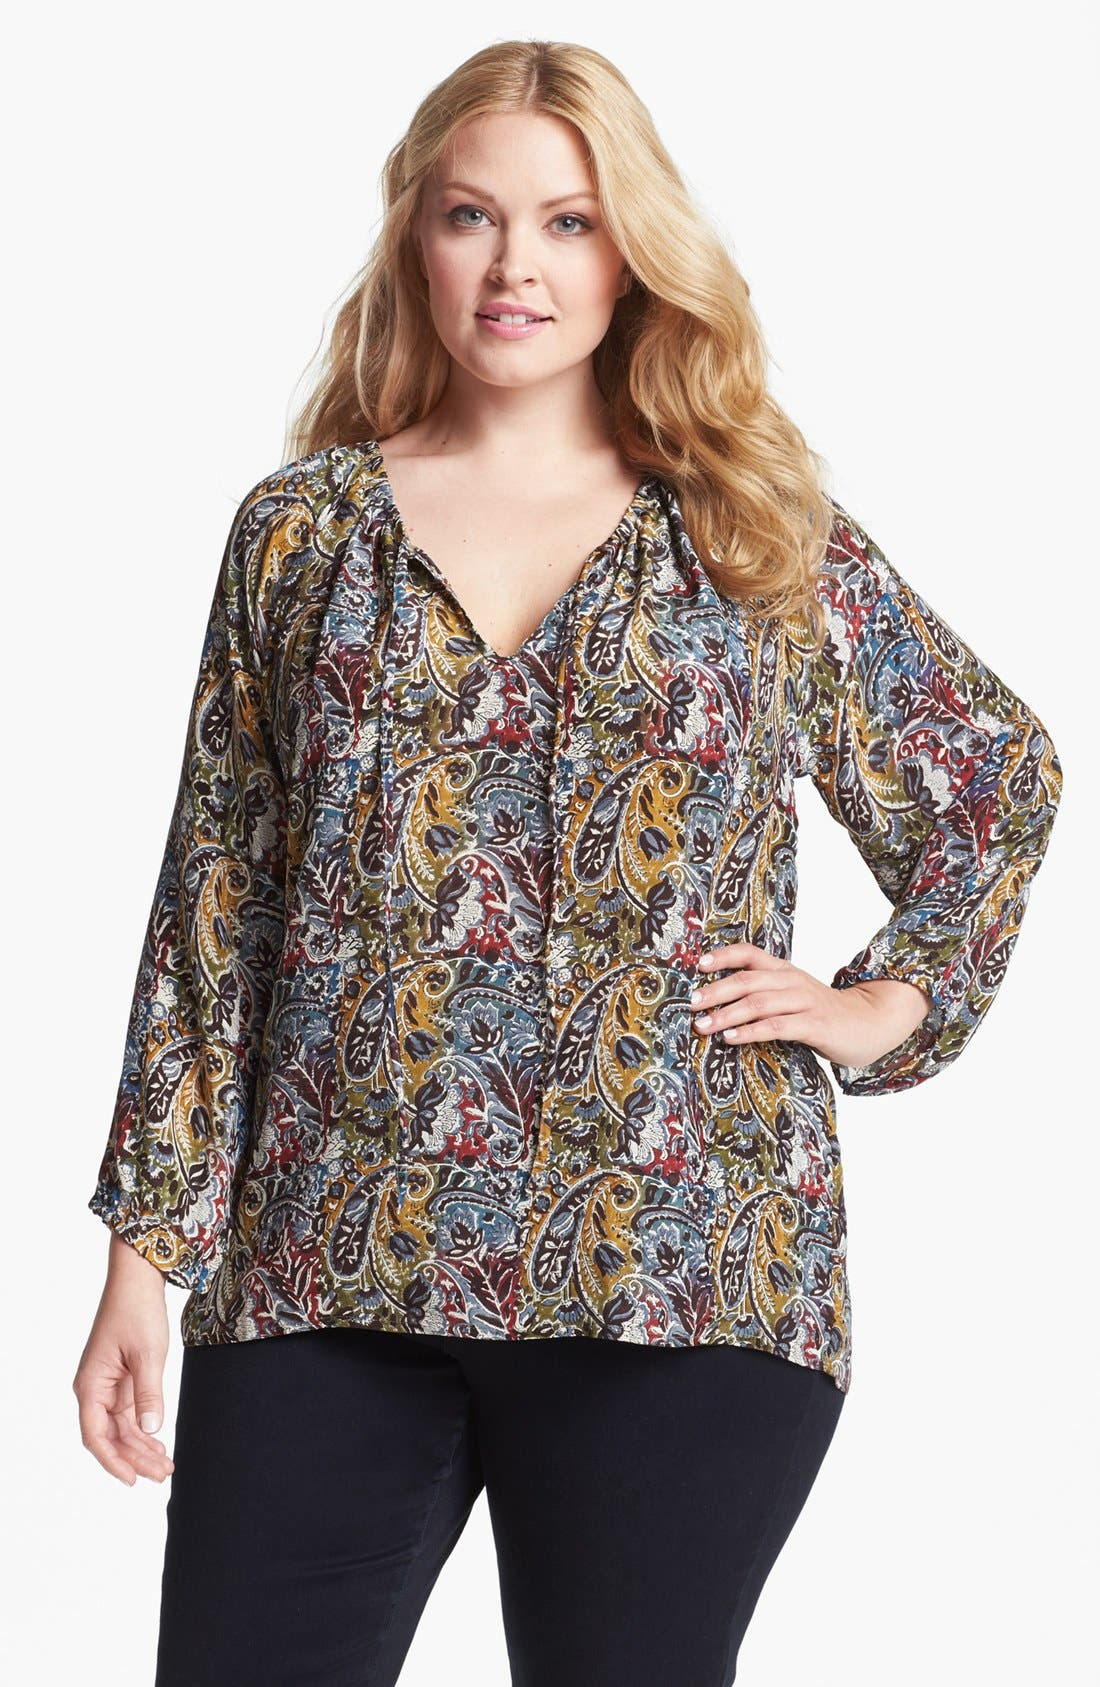 Alternate Image 1 Selected - Tolani 'Randy' Silk Tunic Blouse (Plus Size)